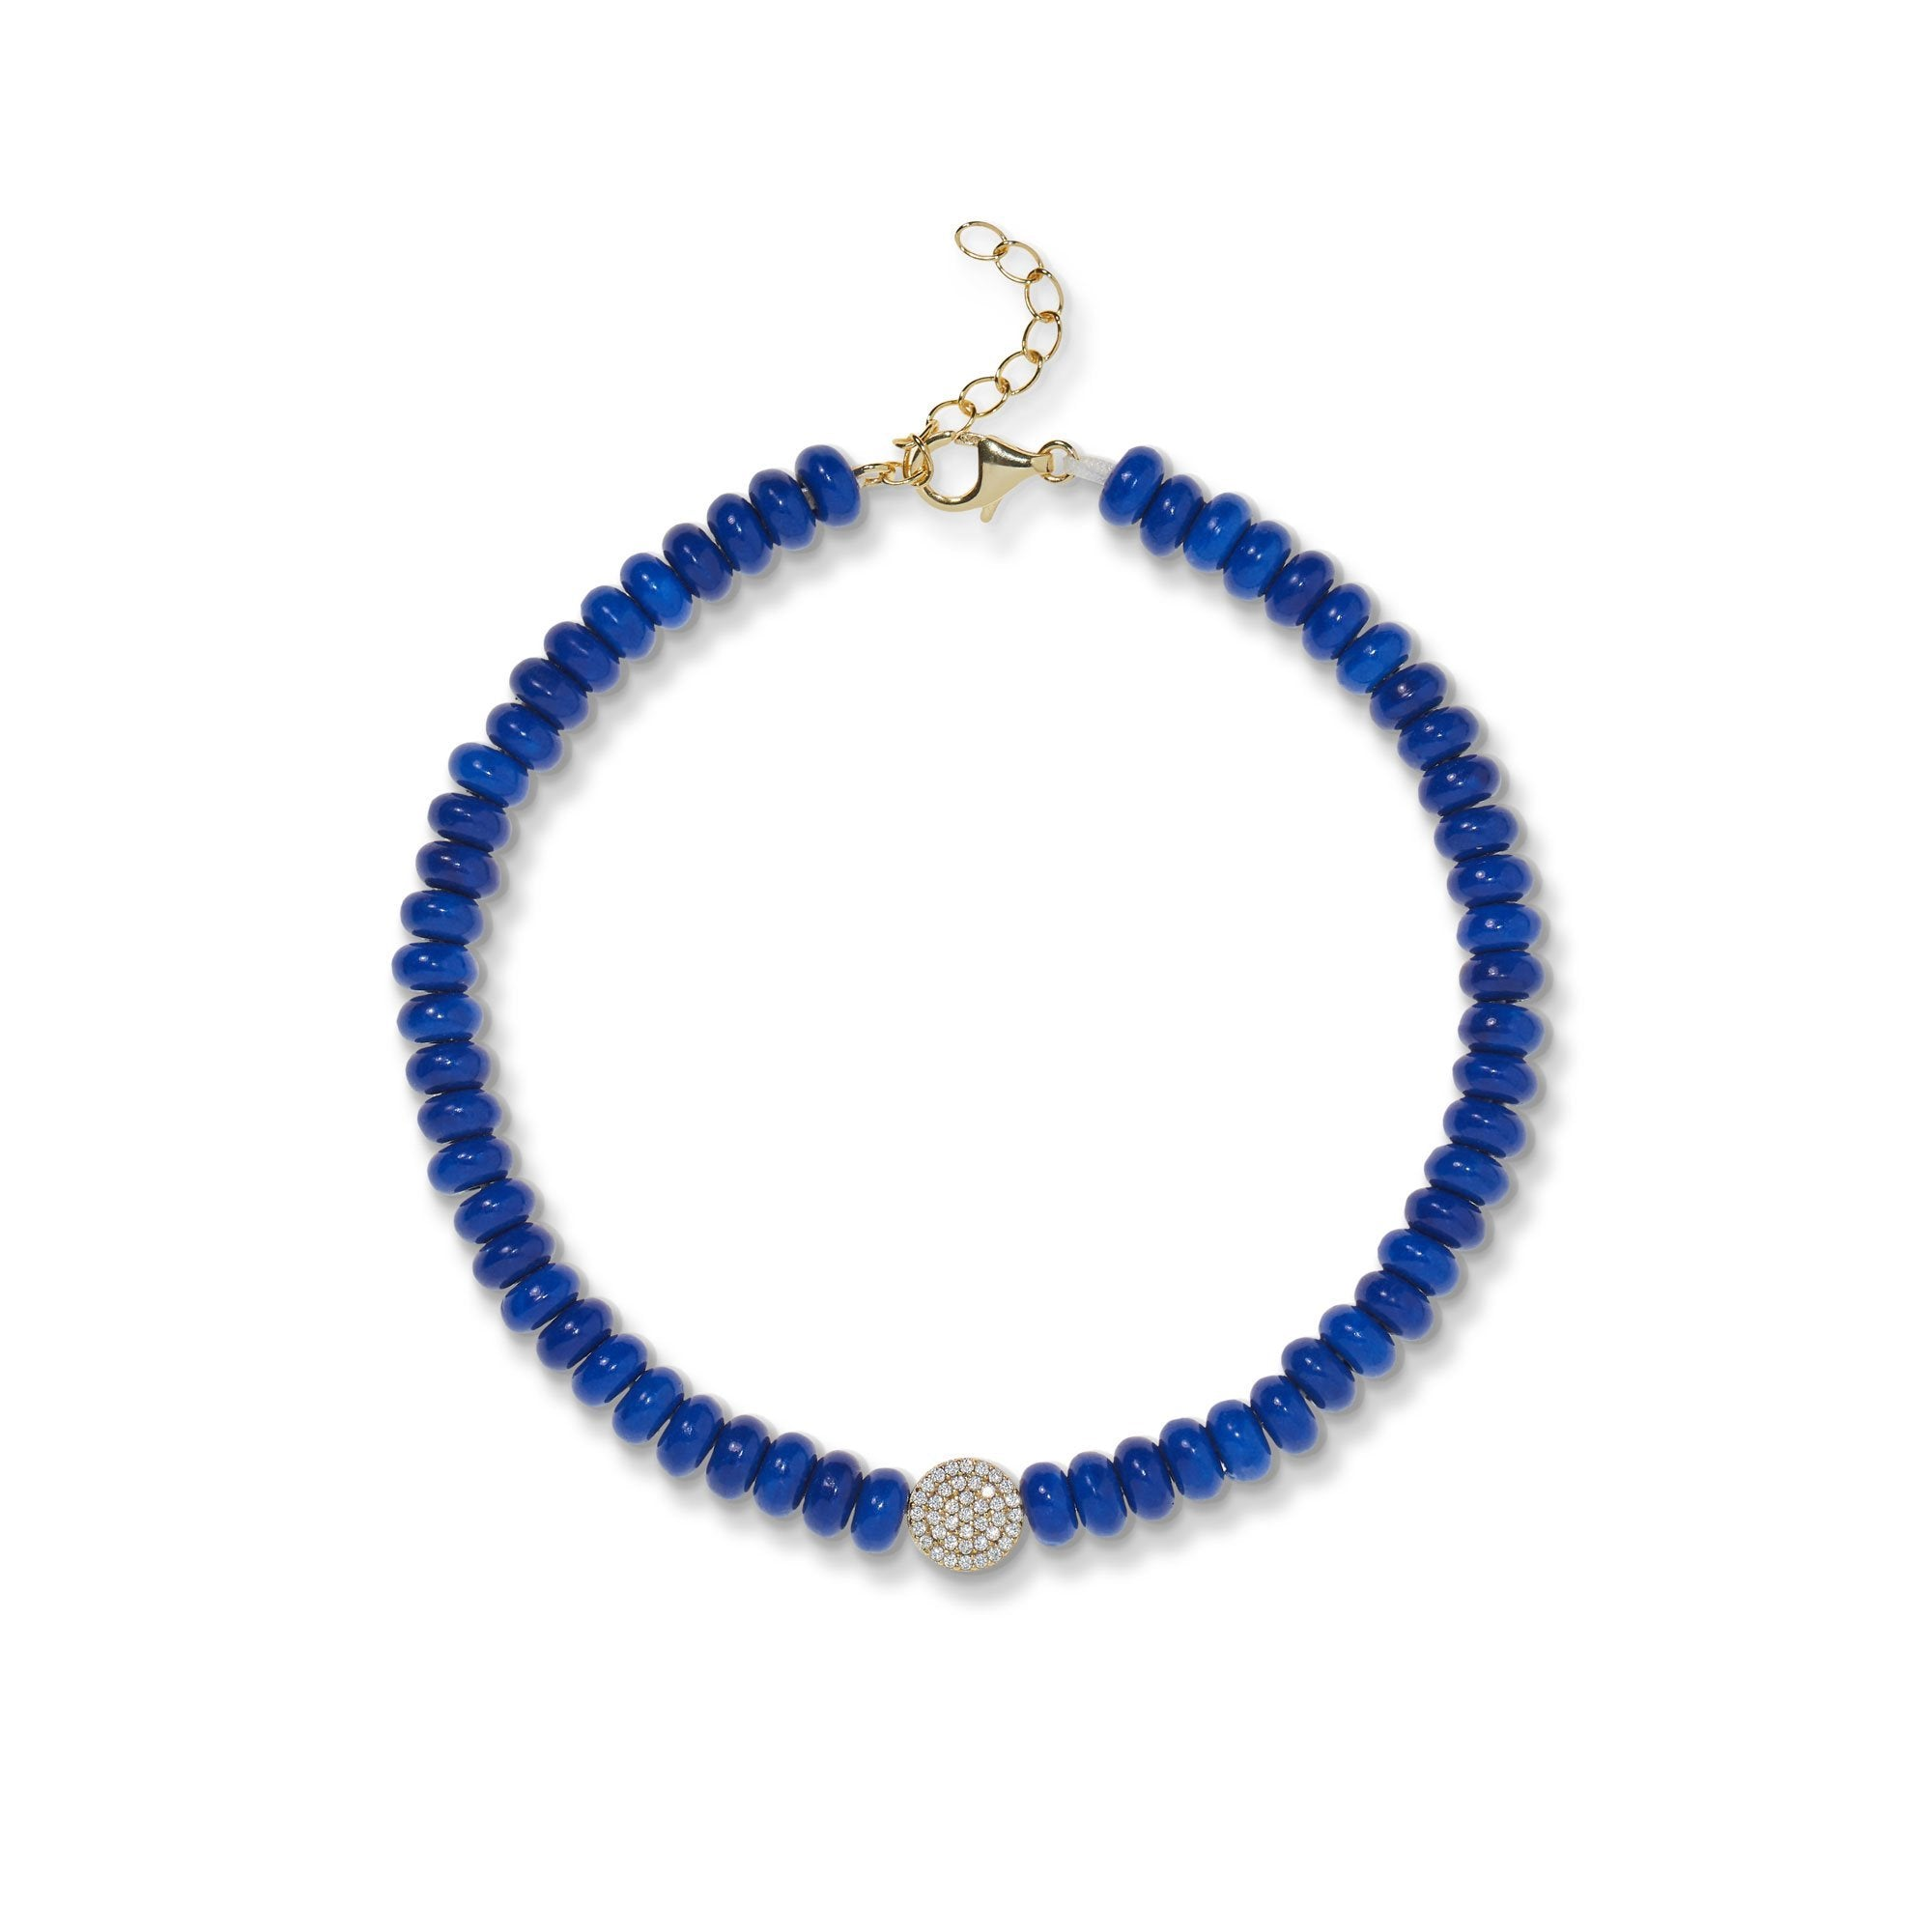 Image of 6,5 mm lapis bead anklet